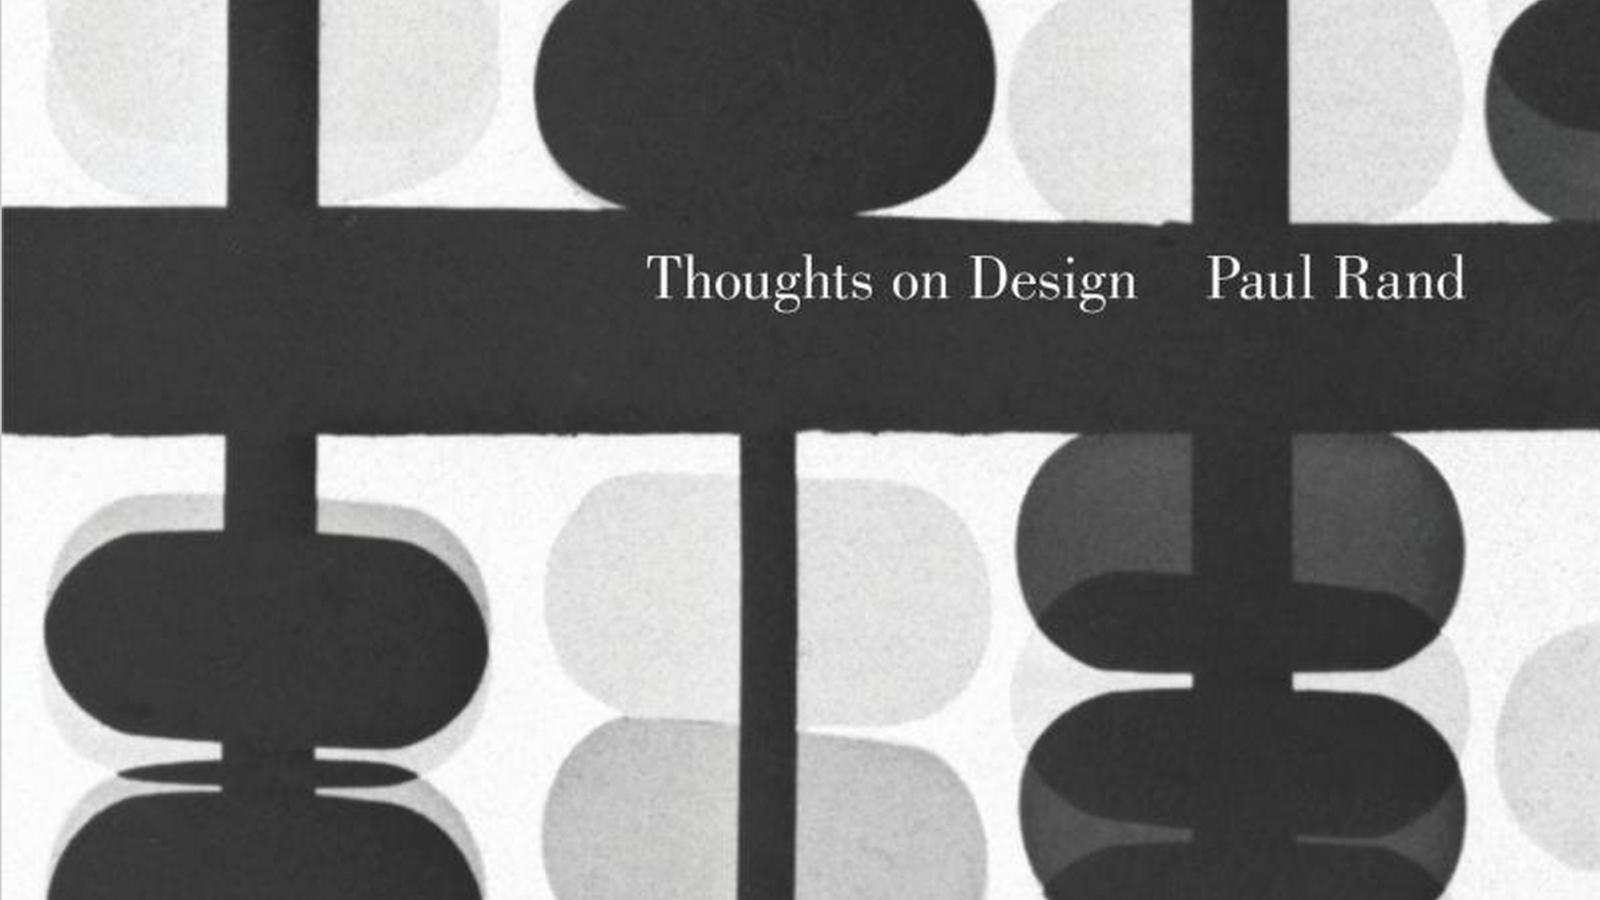 Thoughts on Design by Paul Rand - Book Suggestion